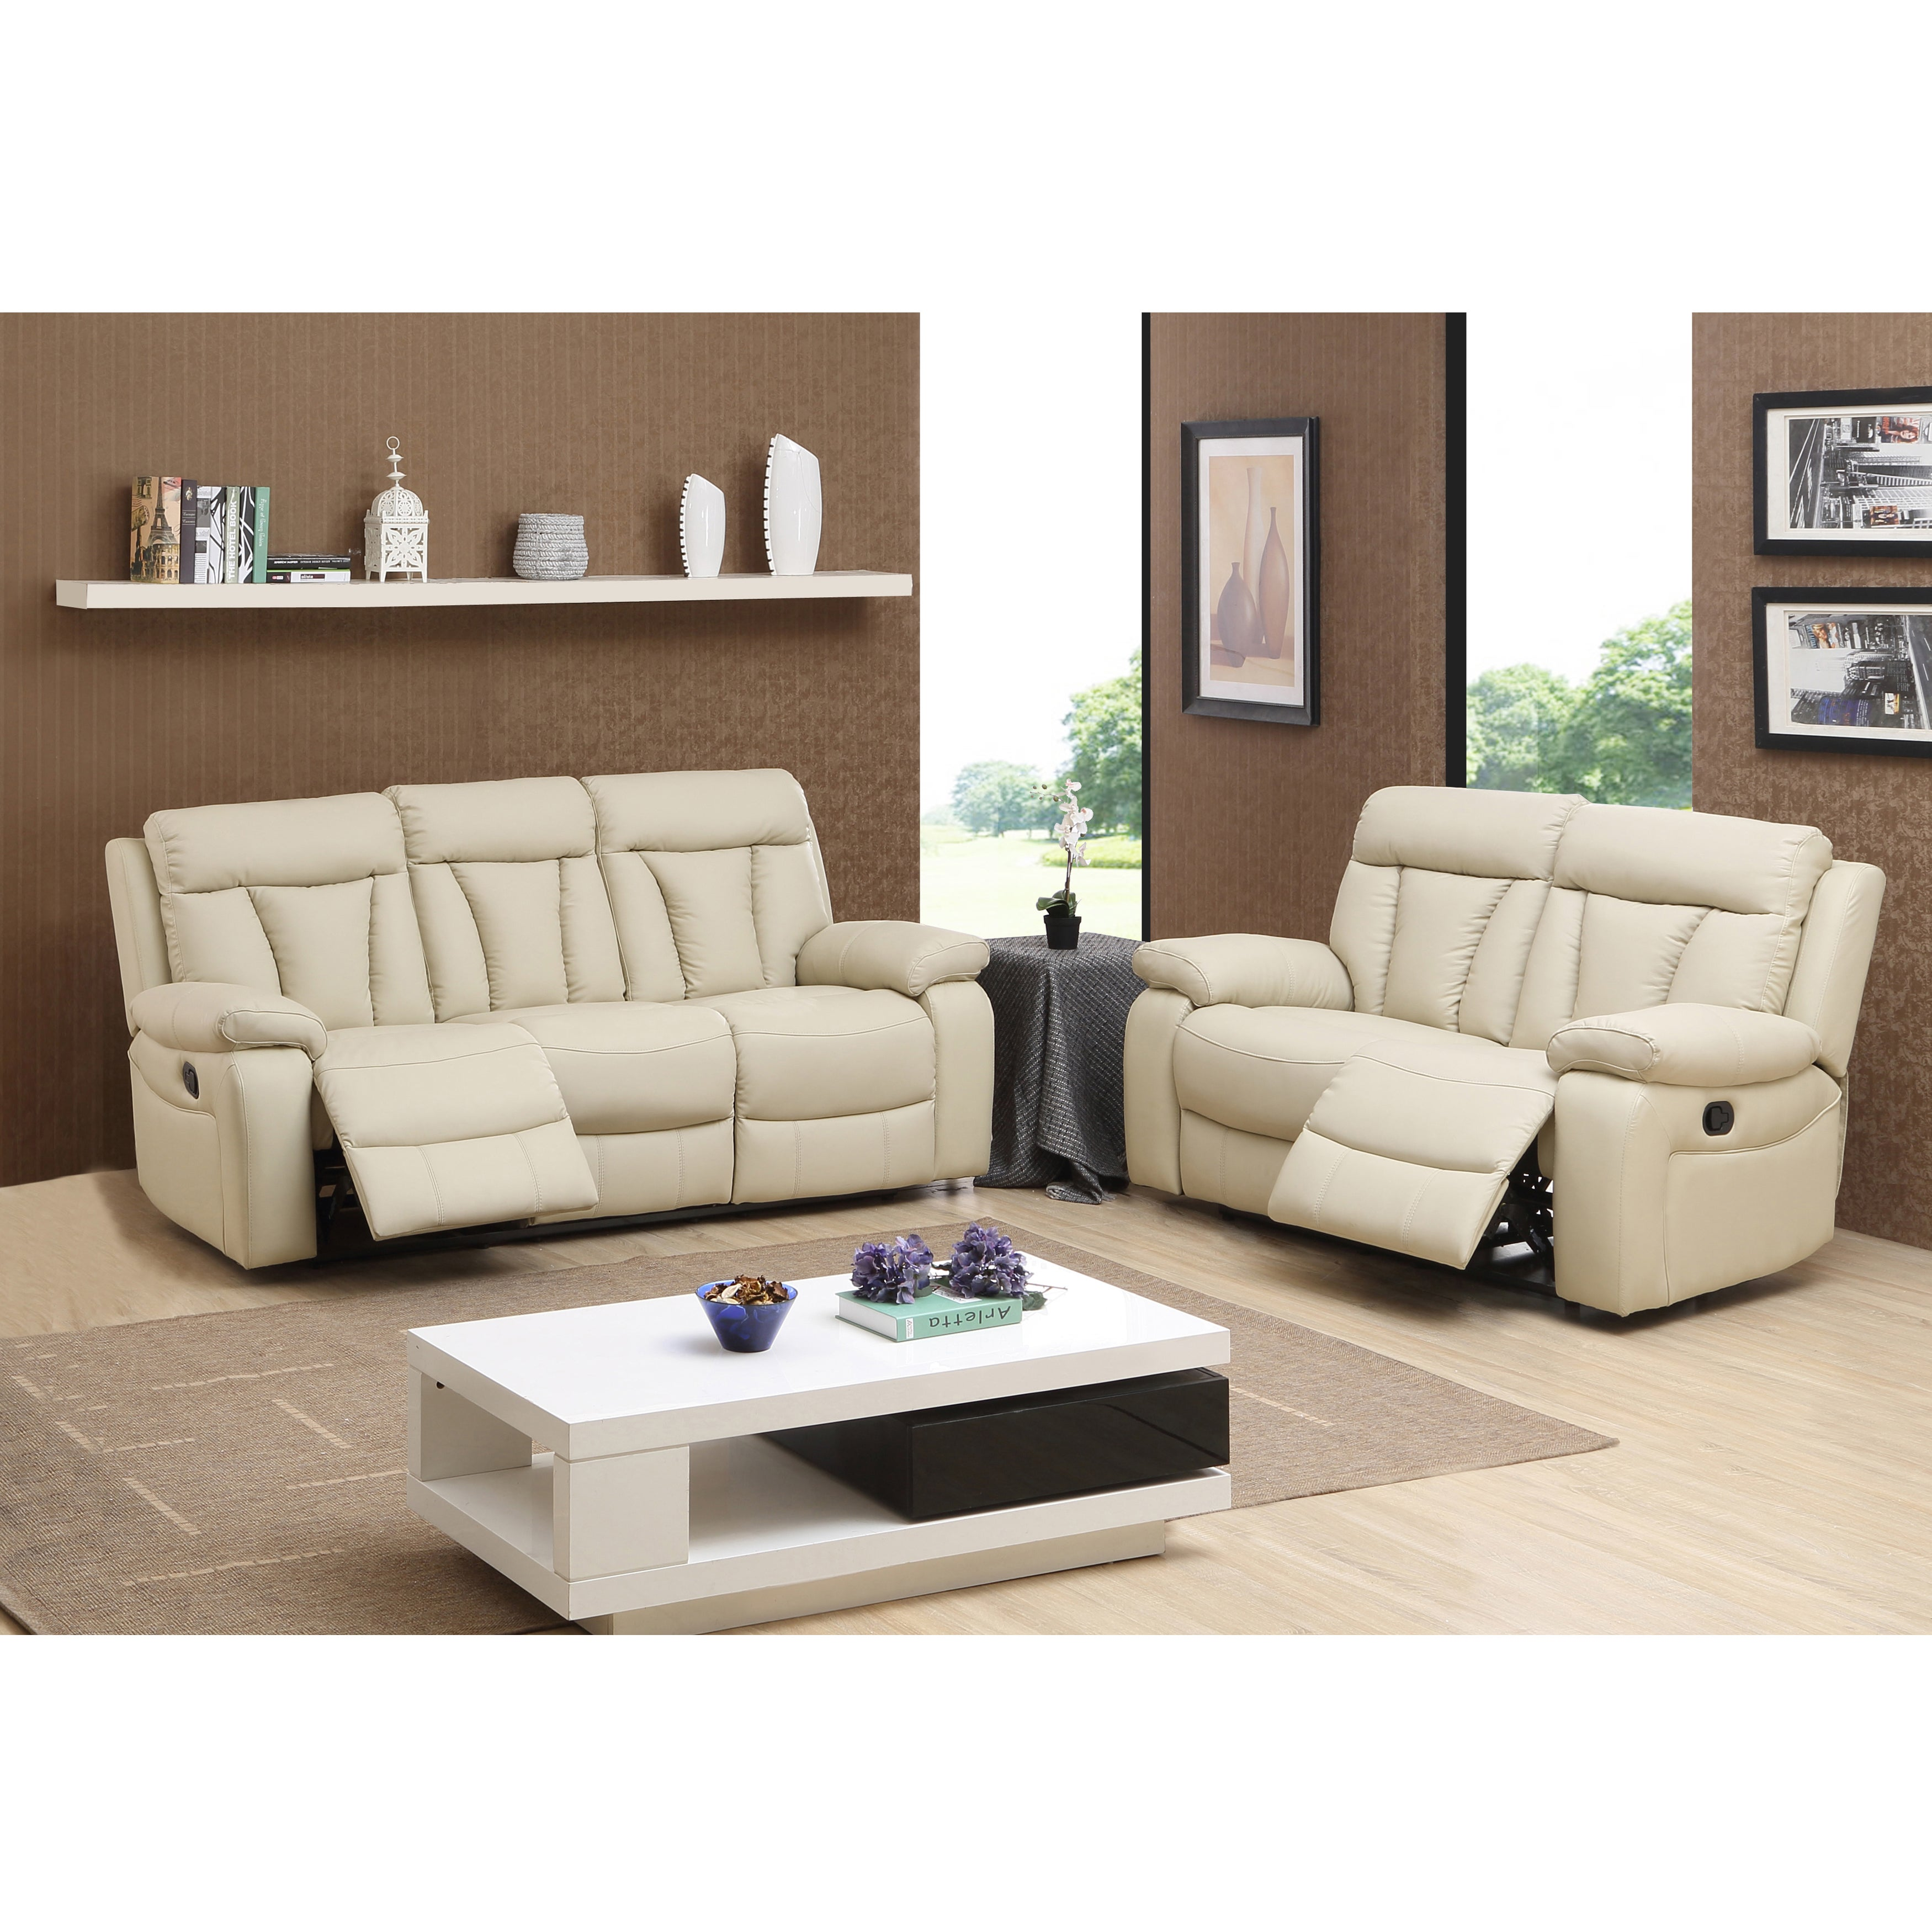 Groovy Skylar Beige Top Grain Leather Reclining Sofa And Loveseat Gmtry Best Dining Table And Chair Ideas Images Gmtryco